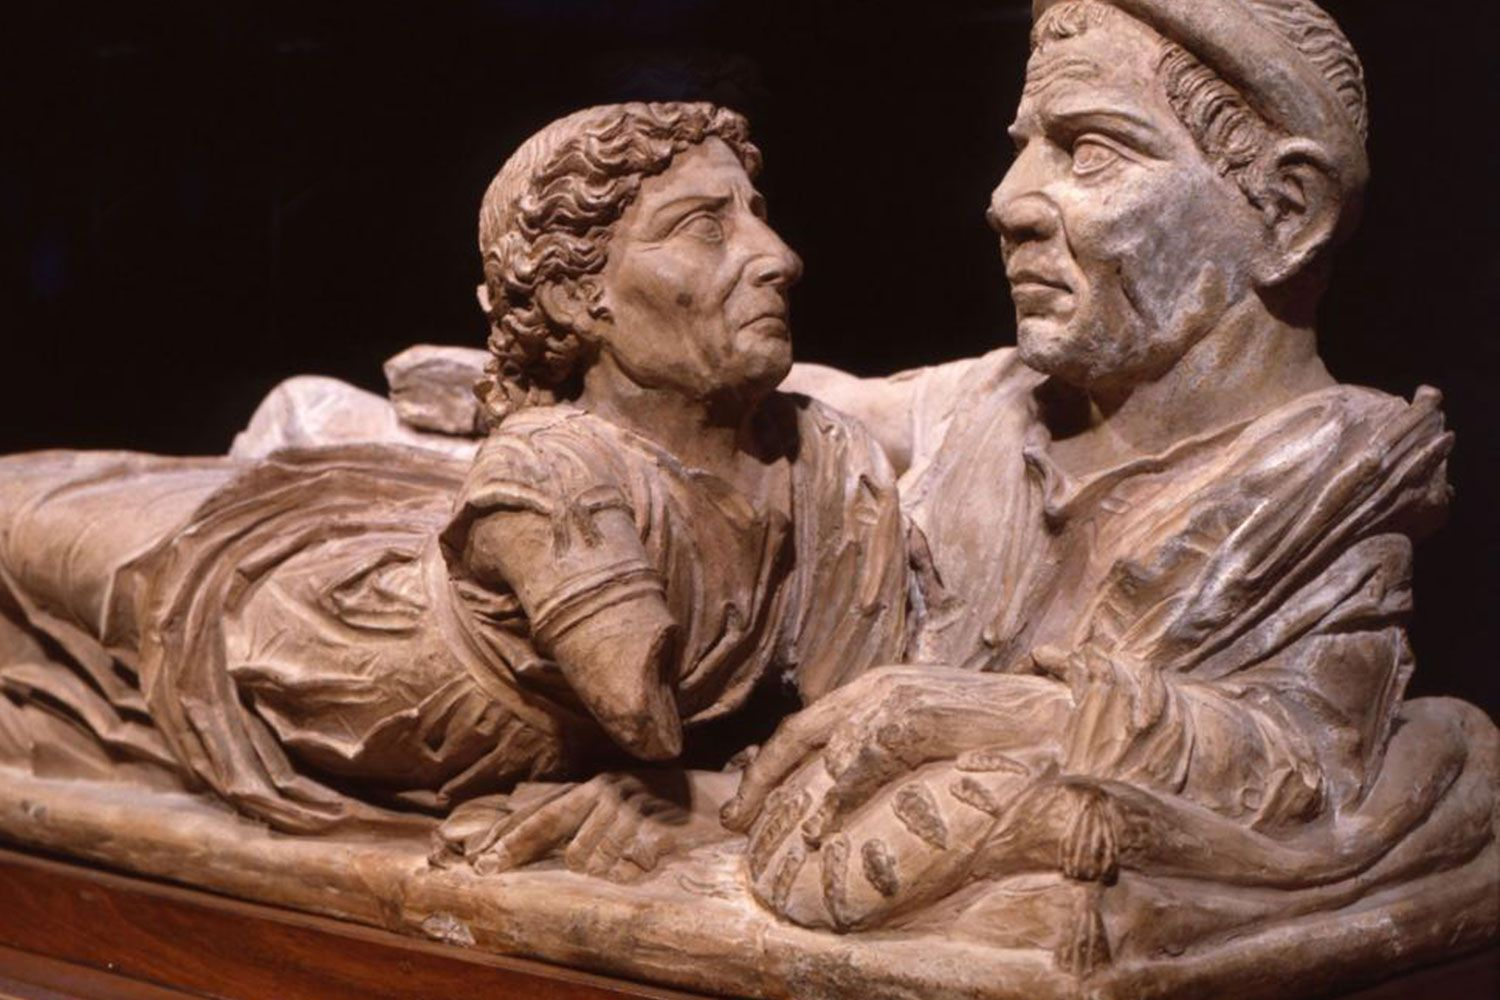 A husband and wife Etruscan funerary urn lid from the late 3rd century BC.